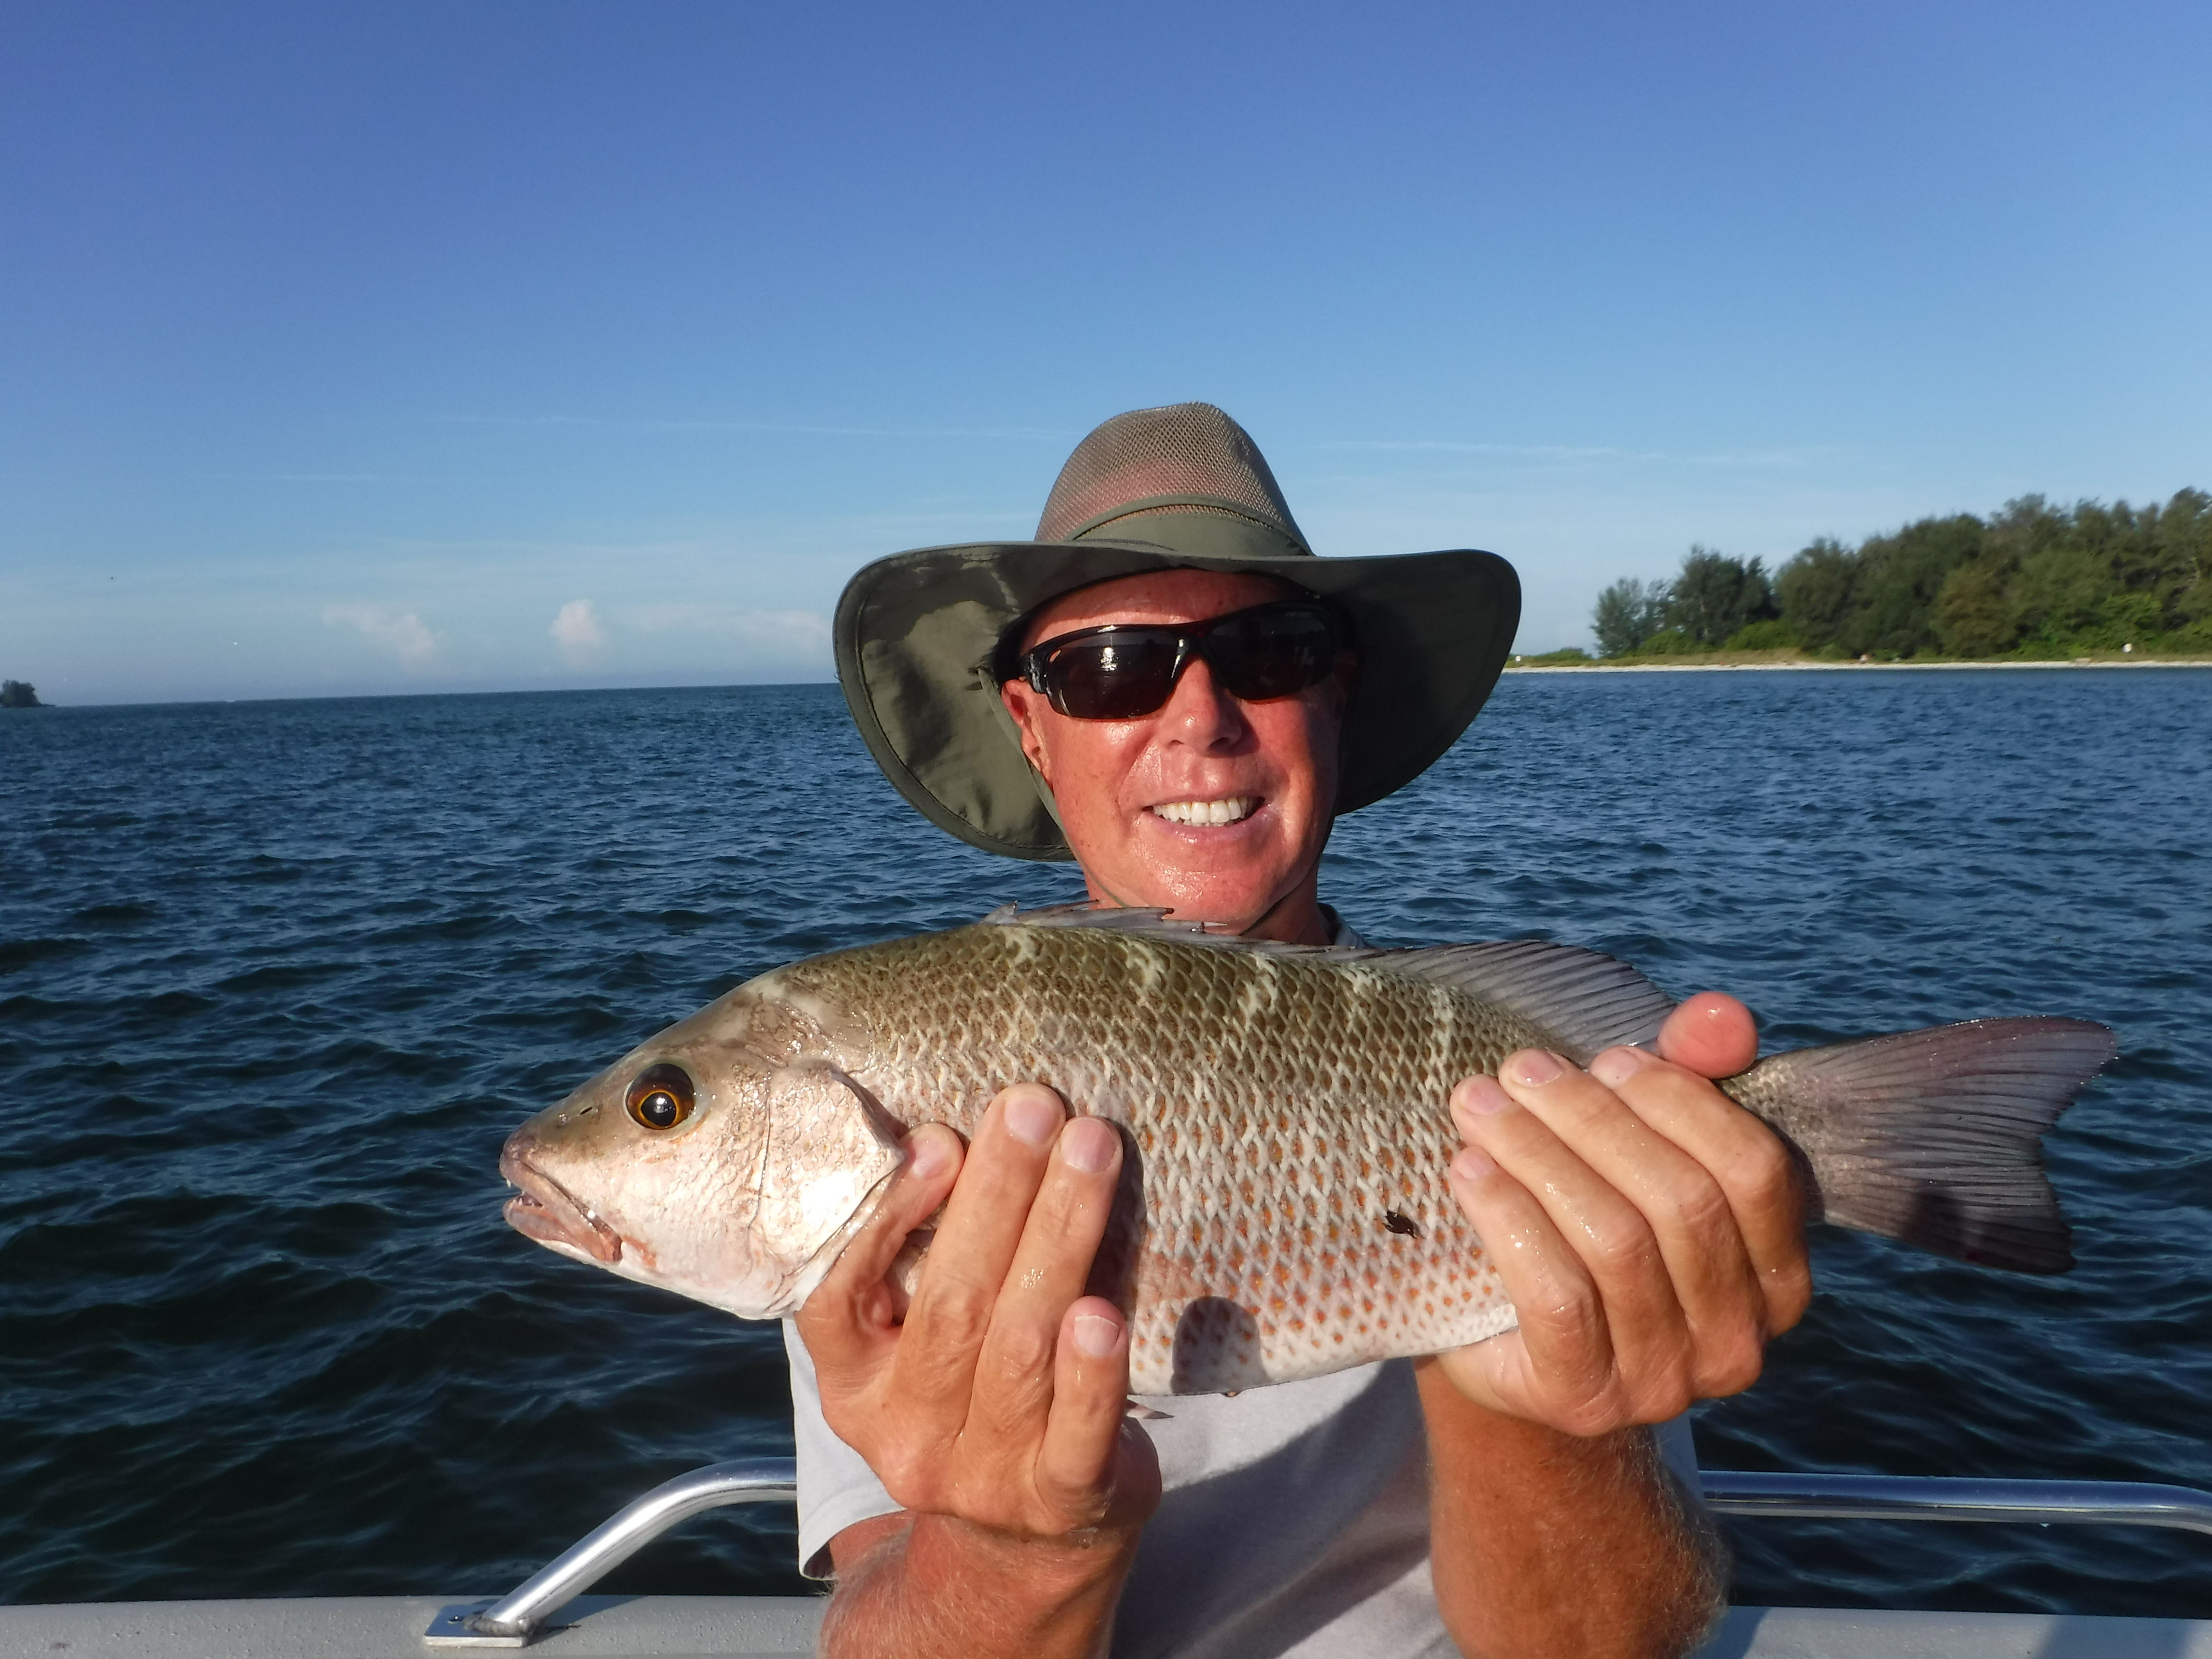 Siesta key snapper fishing charters produce for clients for Siesta key fishing report